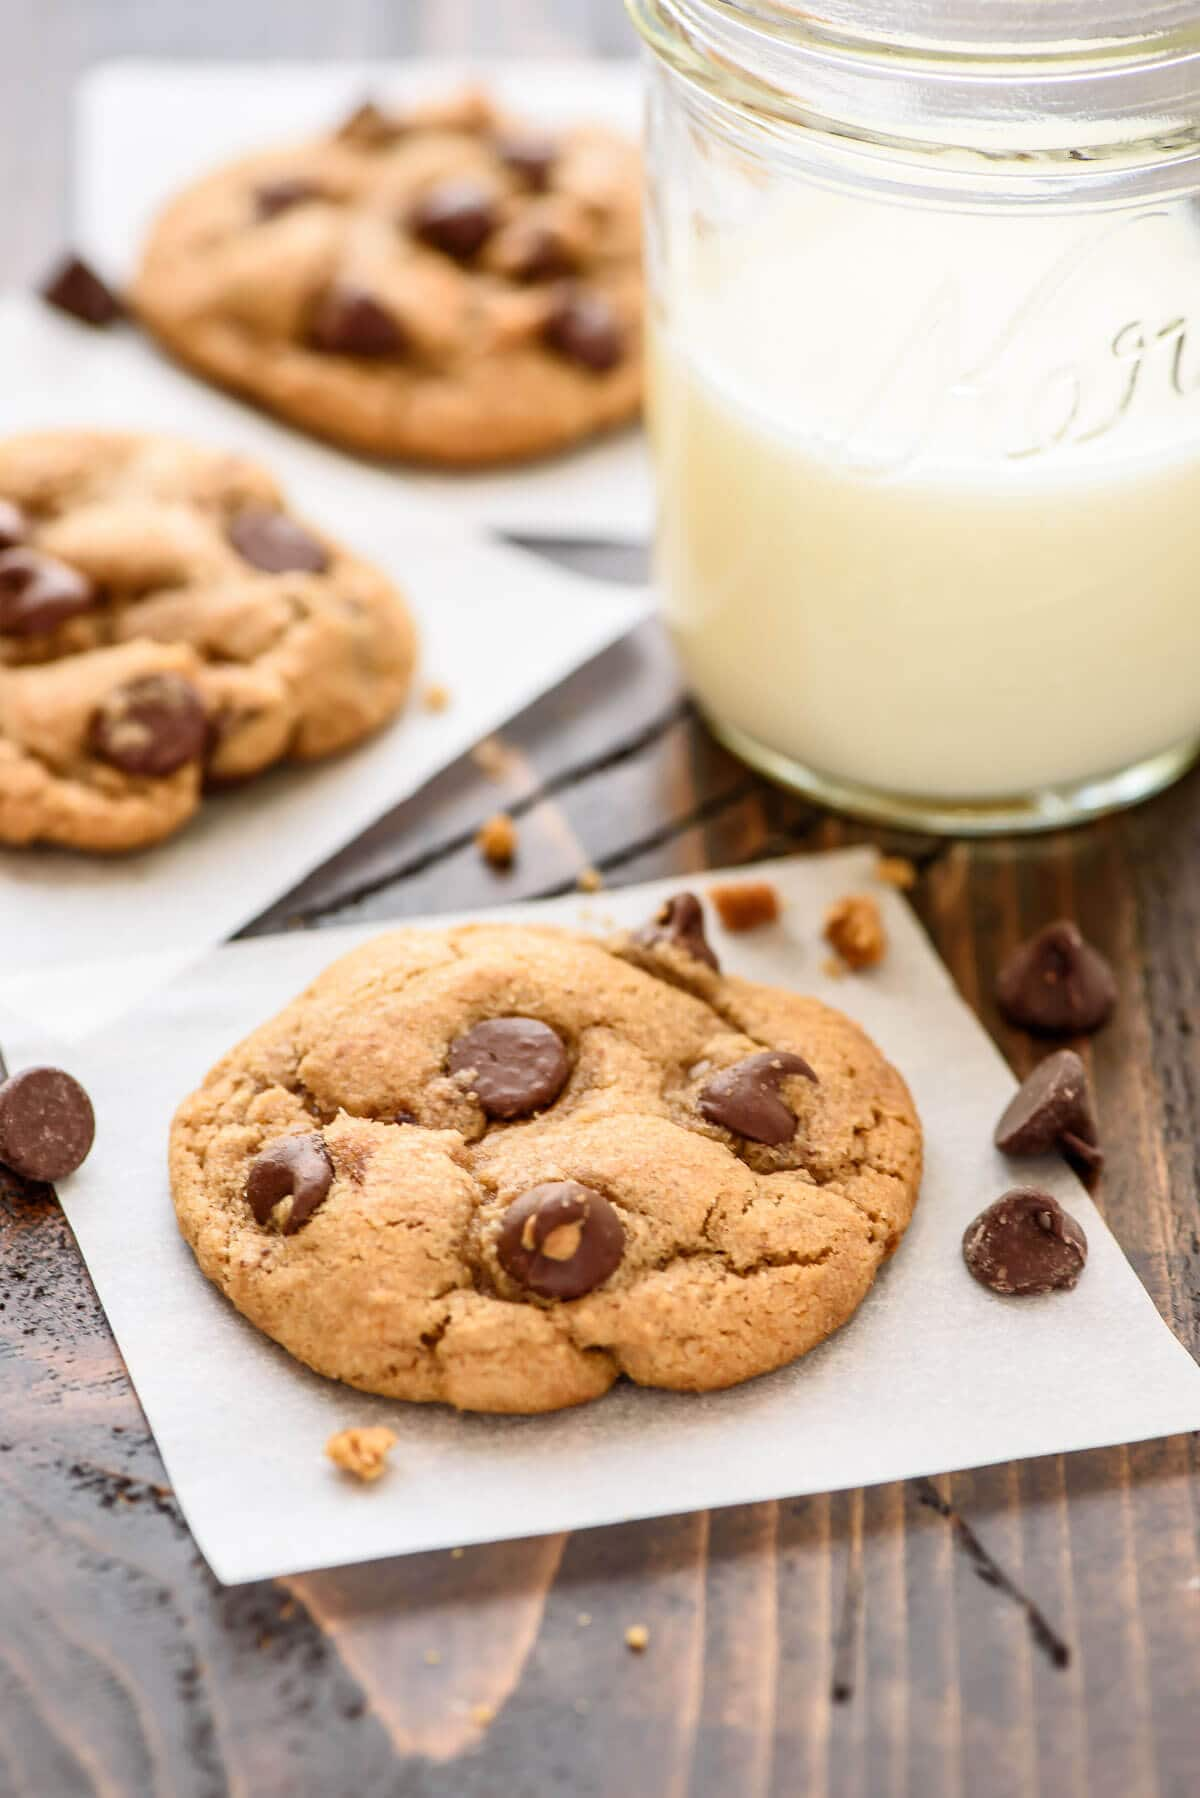 The SOFTEST Chocolate Chip Coconut Oil Cookies. Thick and chewy with tons of chocolate, and they are better for you too!